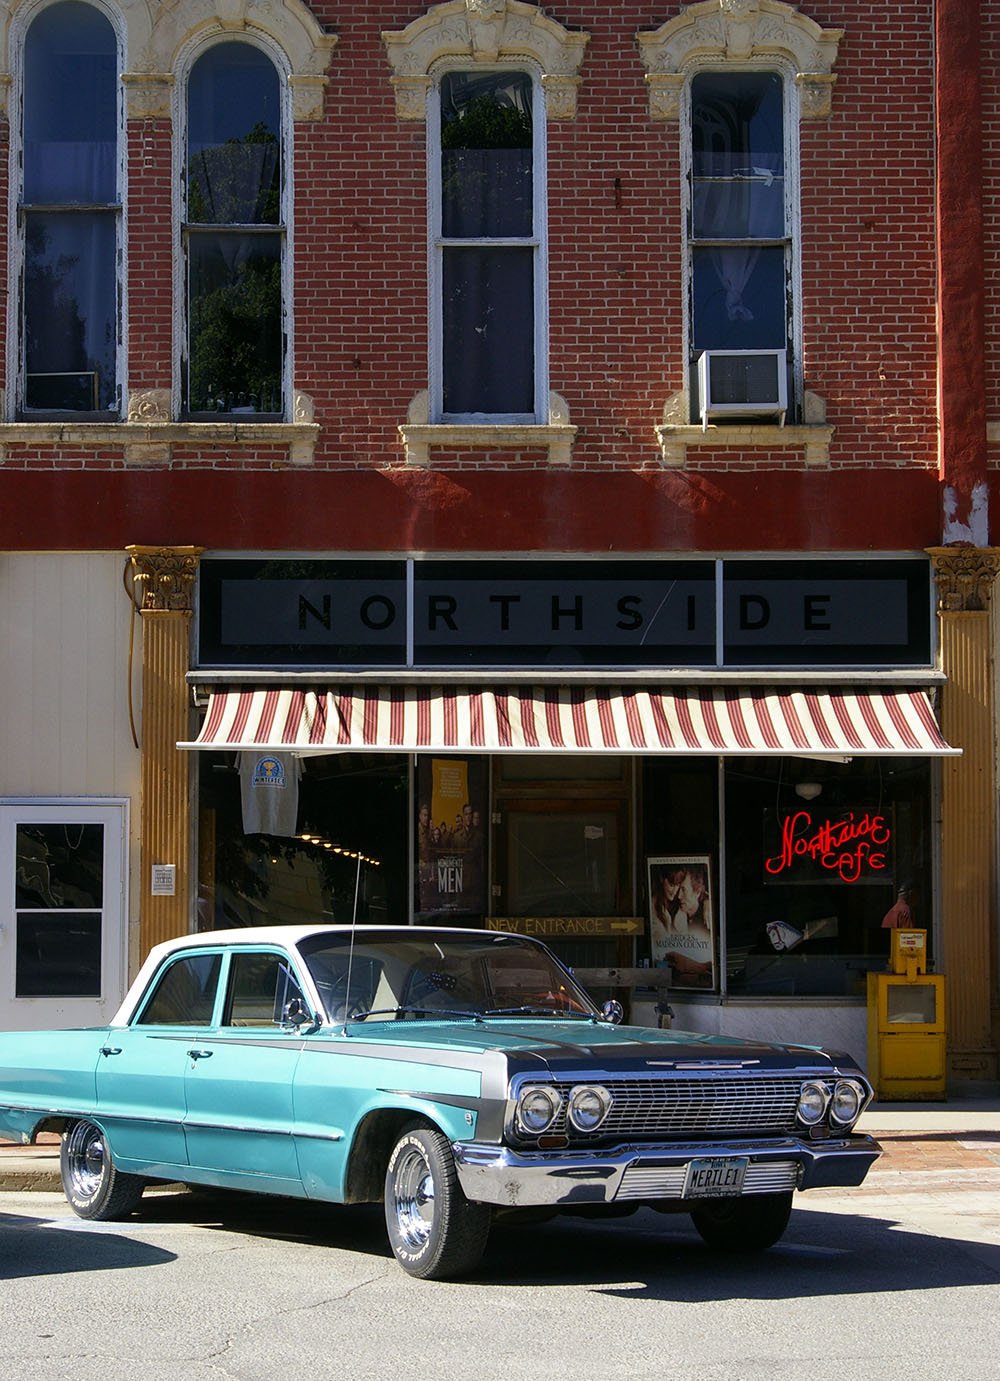 Brick facade and striped awning of the iconic Northside Cafe with a classic teal car in front in Winterset, Iowa